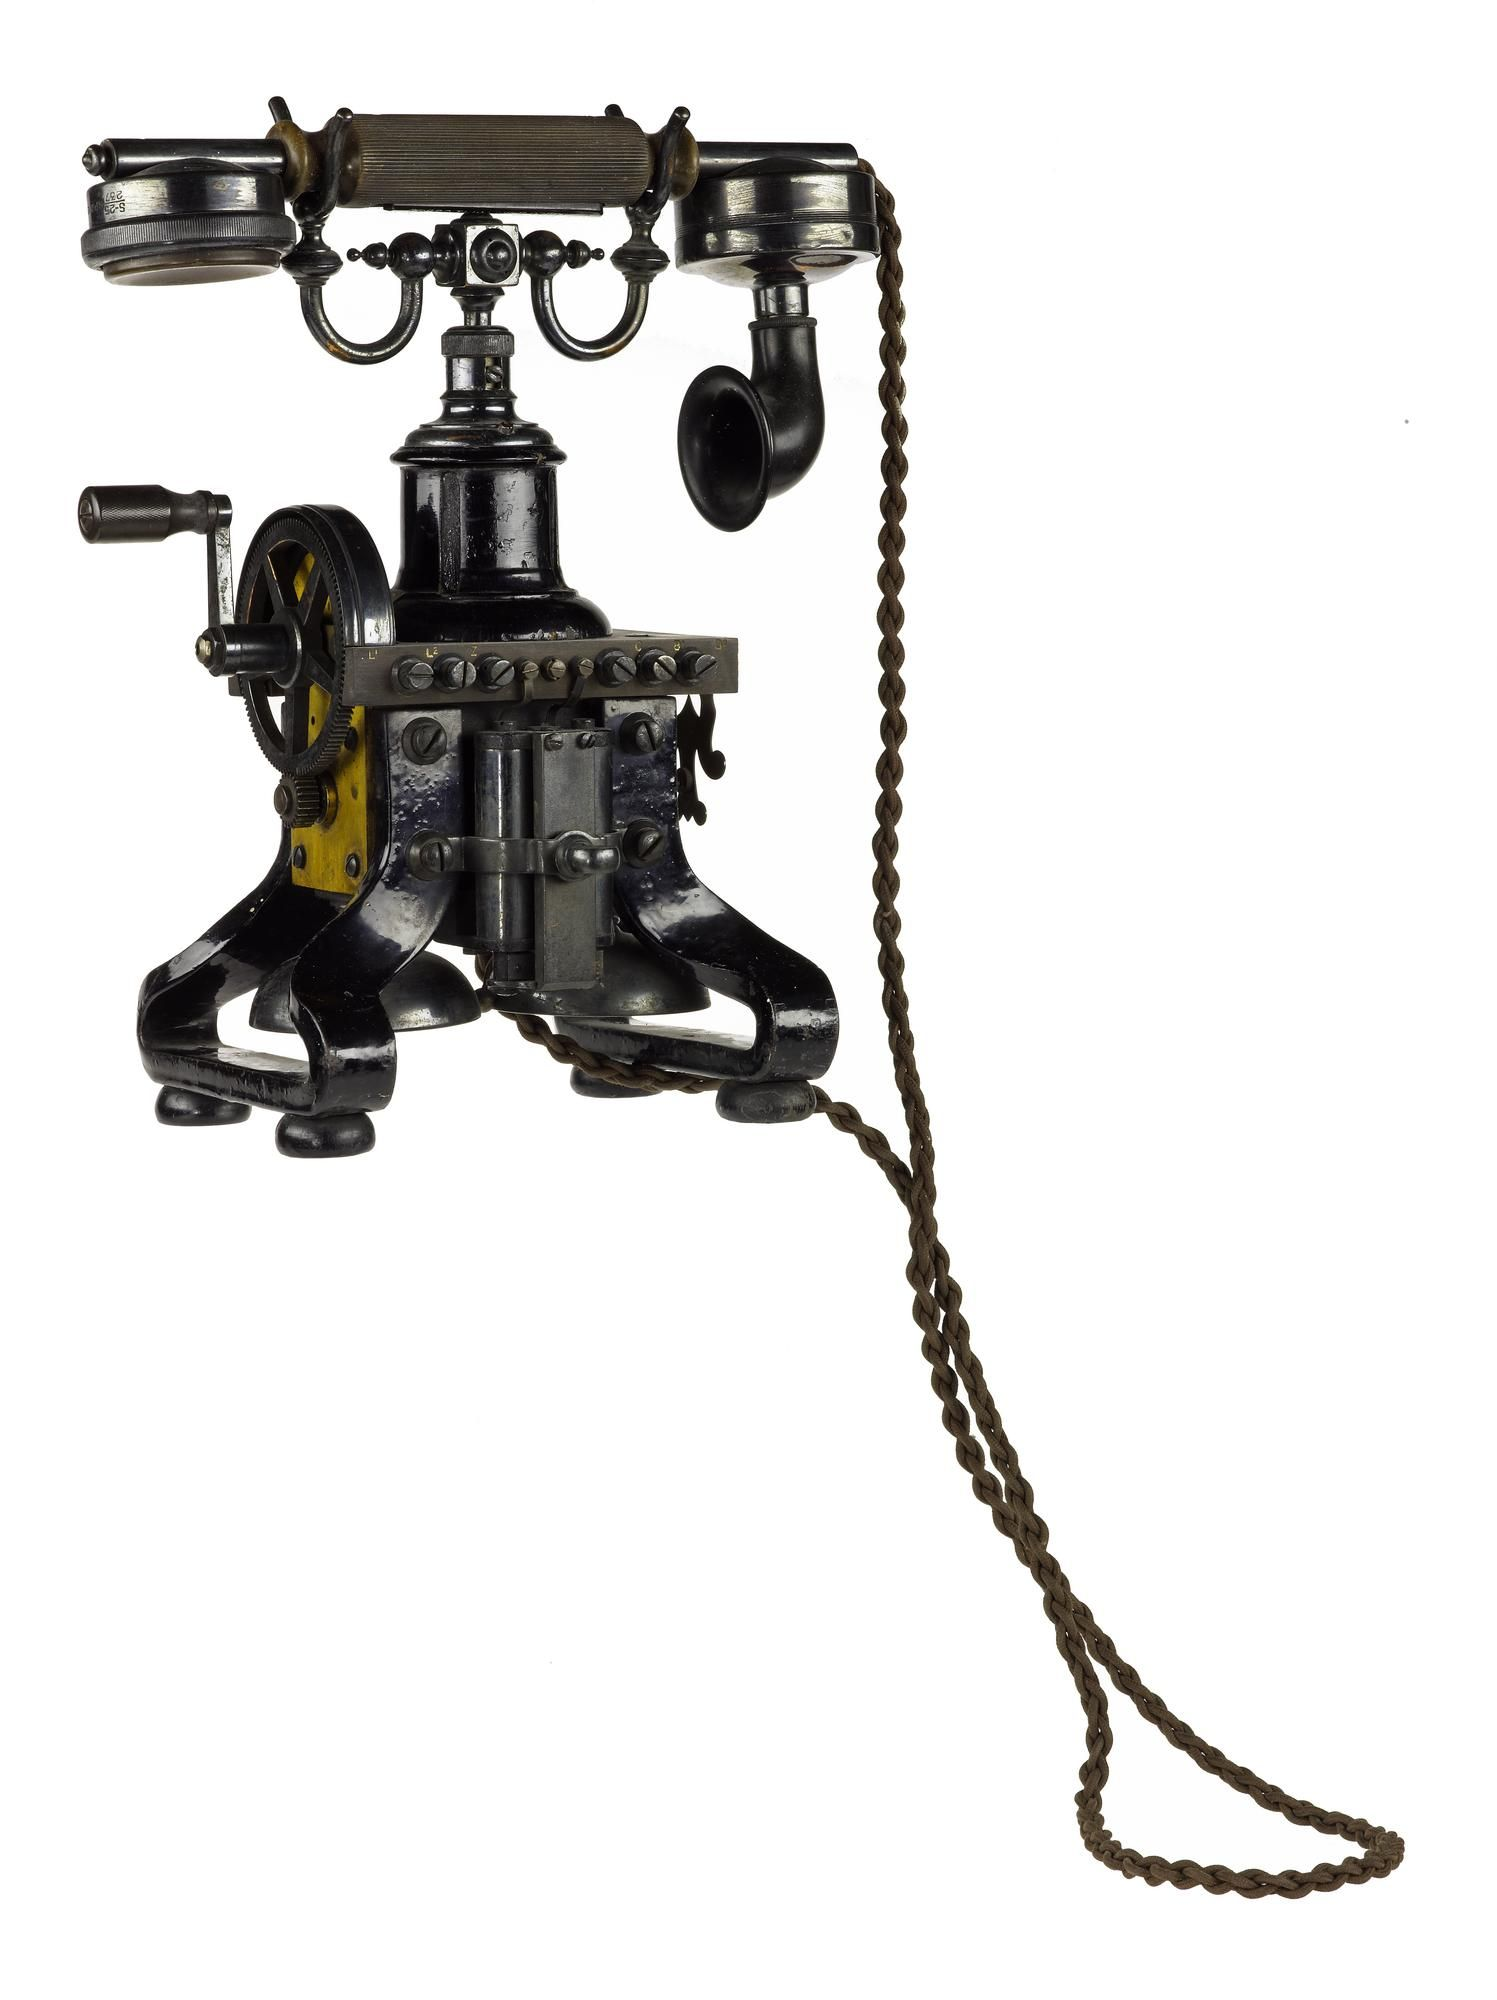 Hand telephone set, c. 1900, with the handset on a cradle above the instrument which rests on the magnets of the magneto generator, and designed for table mounting.